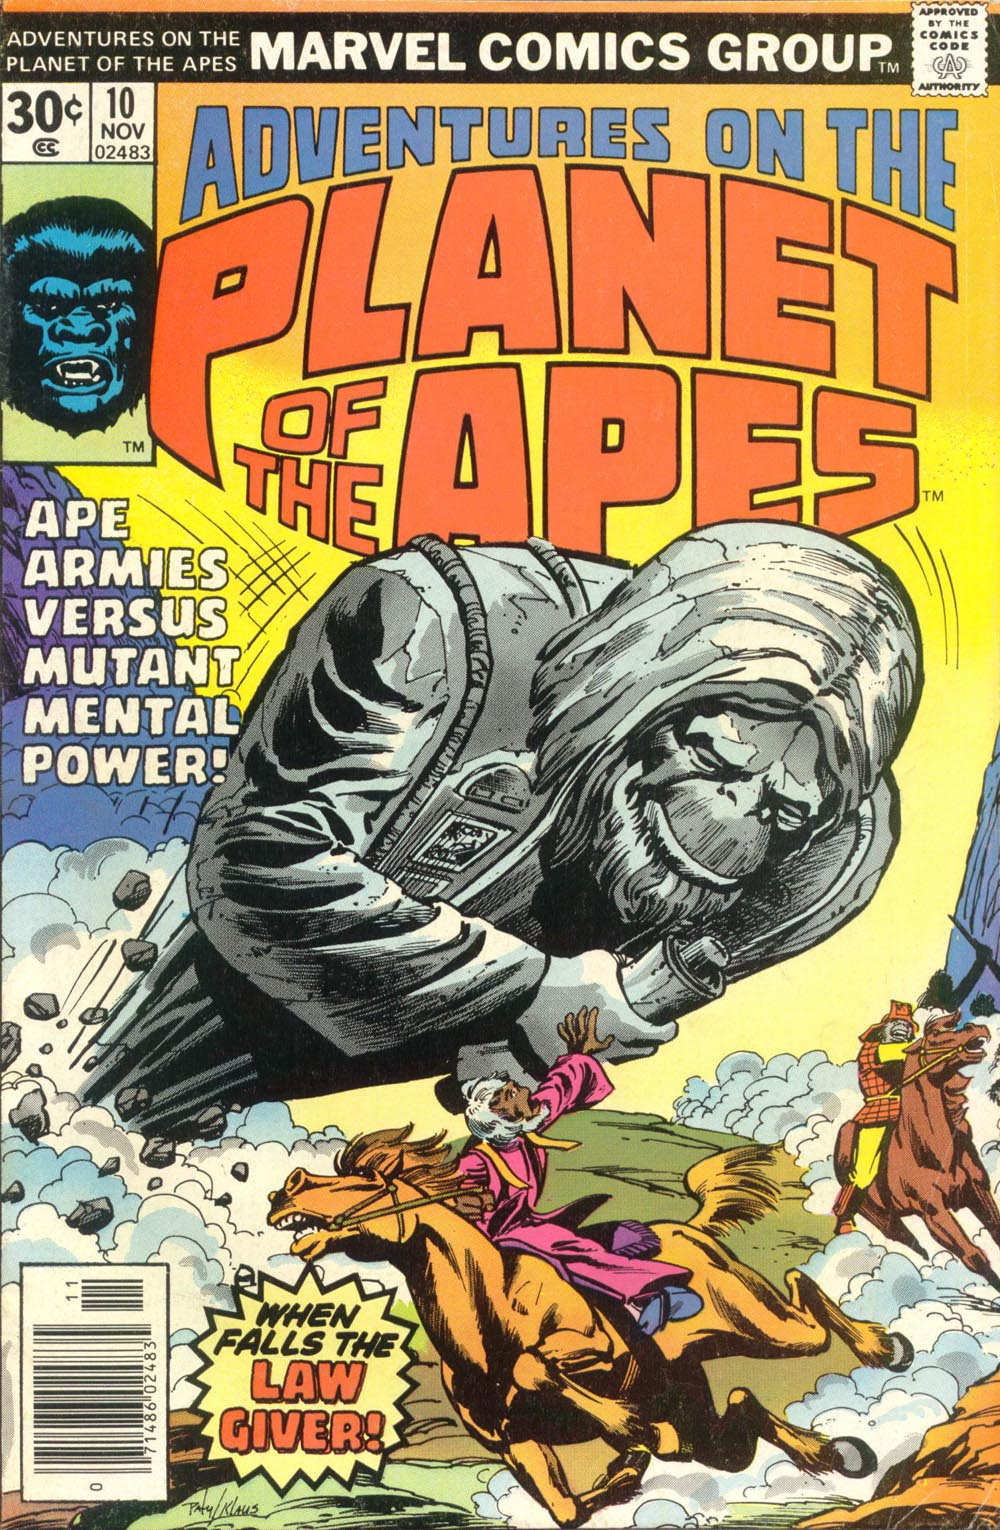 Adventures on the Planet of the Apes issue 10 - Page 1